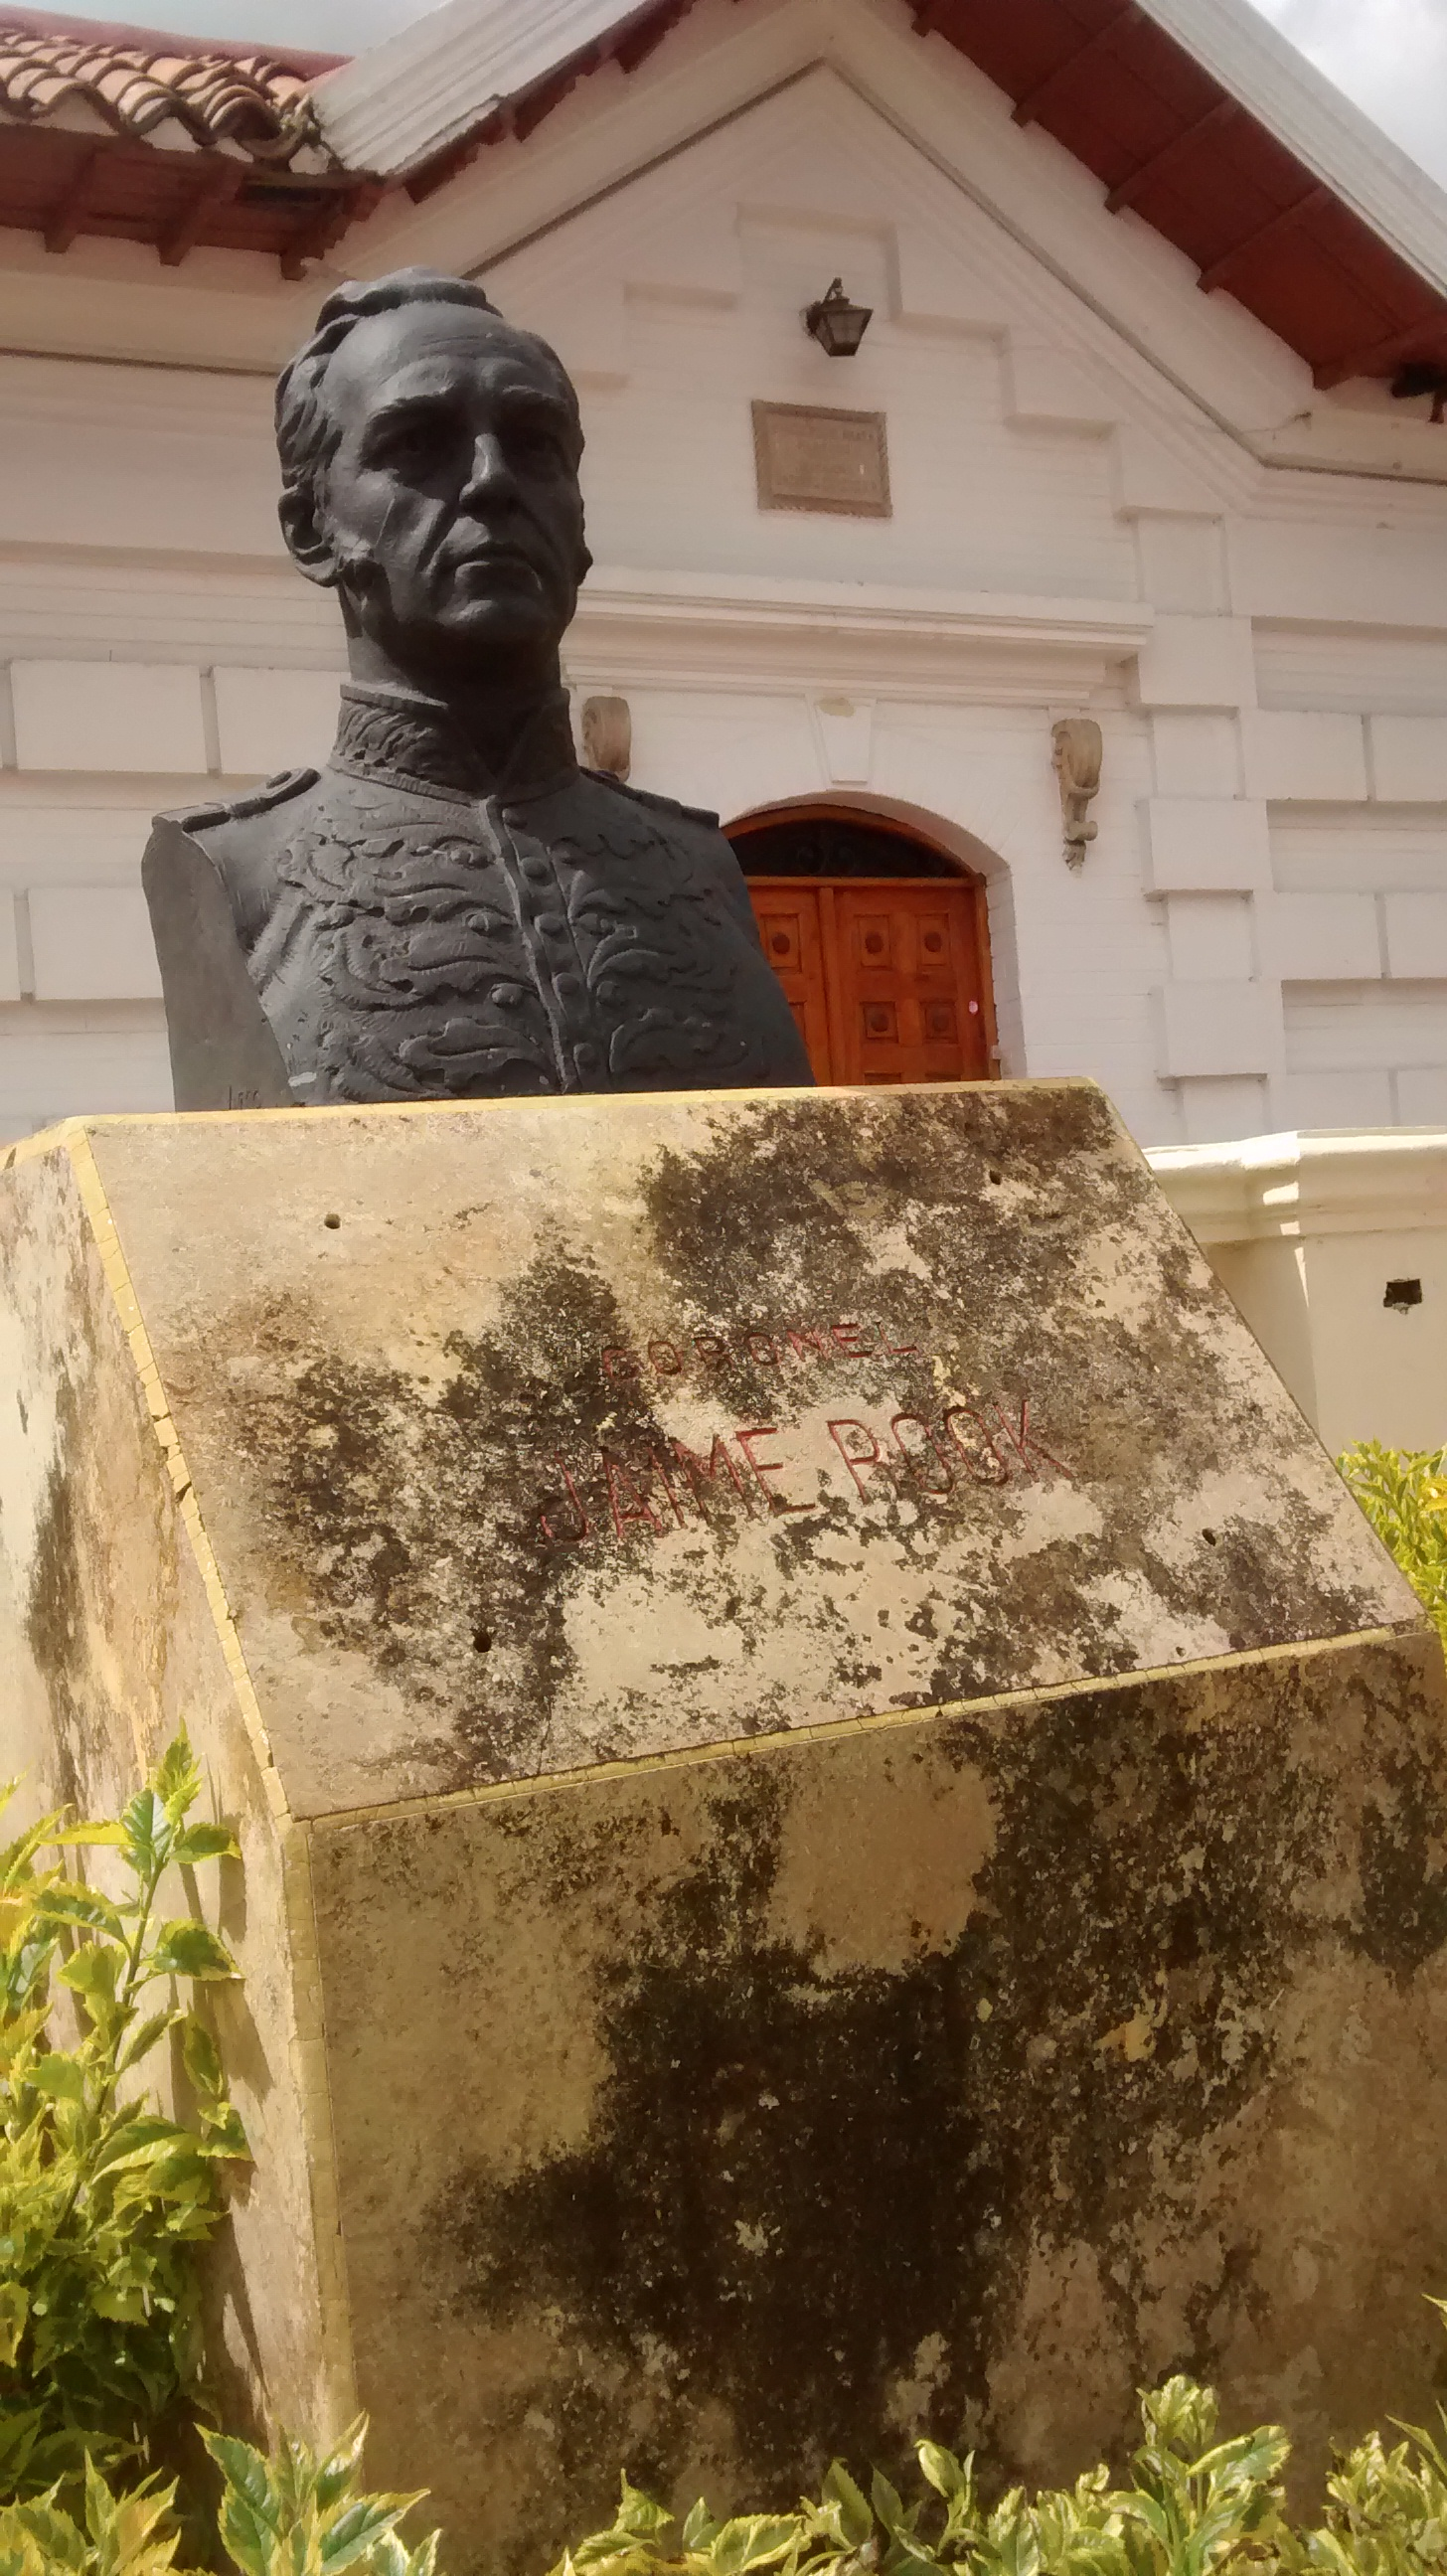 The bust of Dublin-born James Rooke, aka Jaime Rook, in Paipa, Boyacá, Colombia.